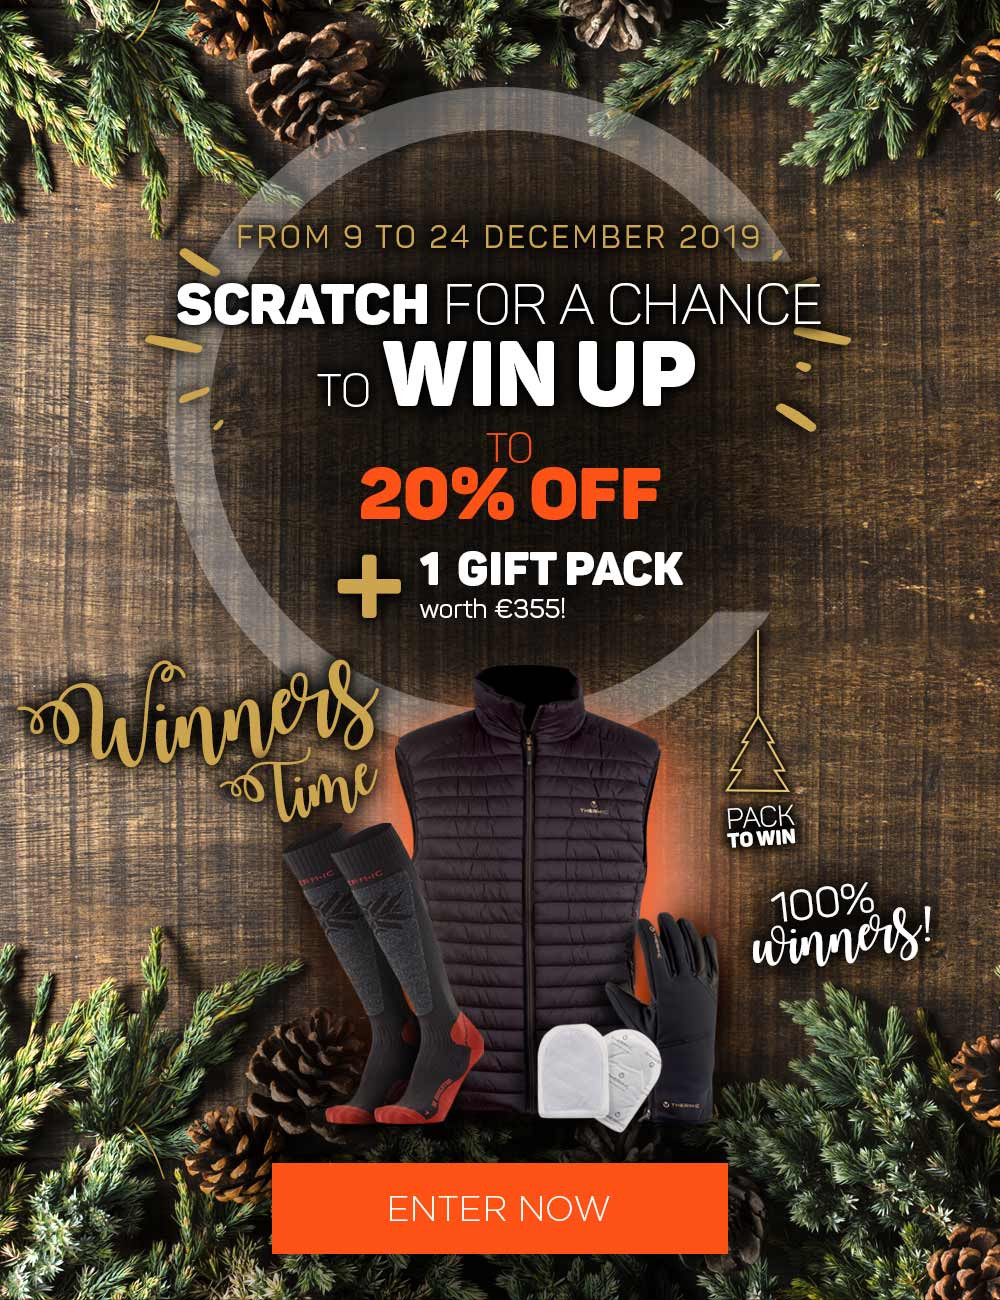 Scratch and discover your voucher!